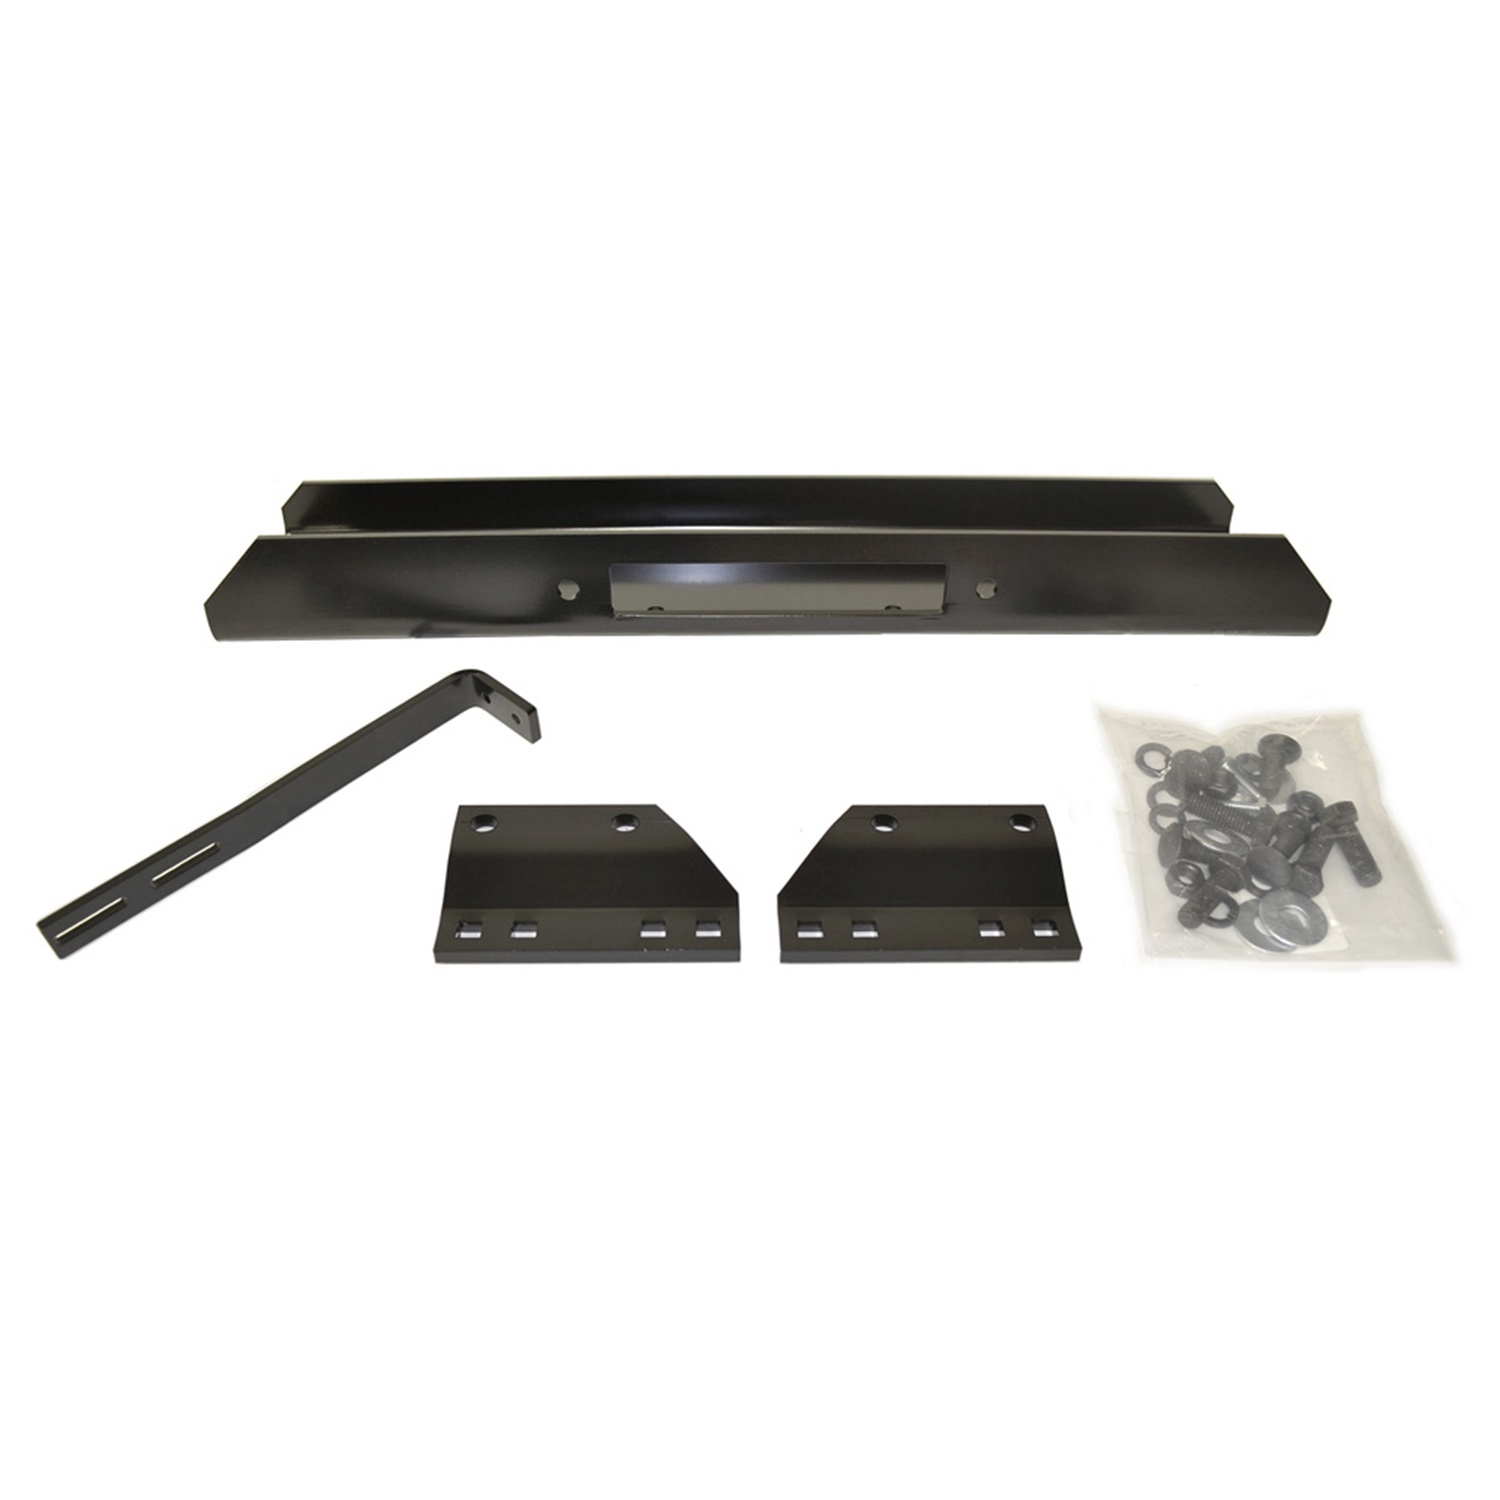 Warn 21390 Winch Mounting Plate 87-95 Wrangler (YJ) at Sears.com